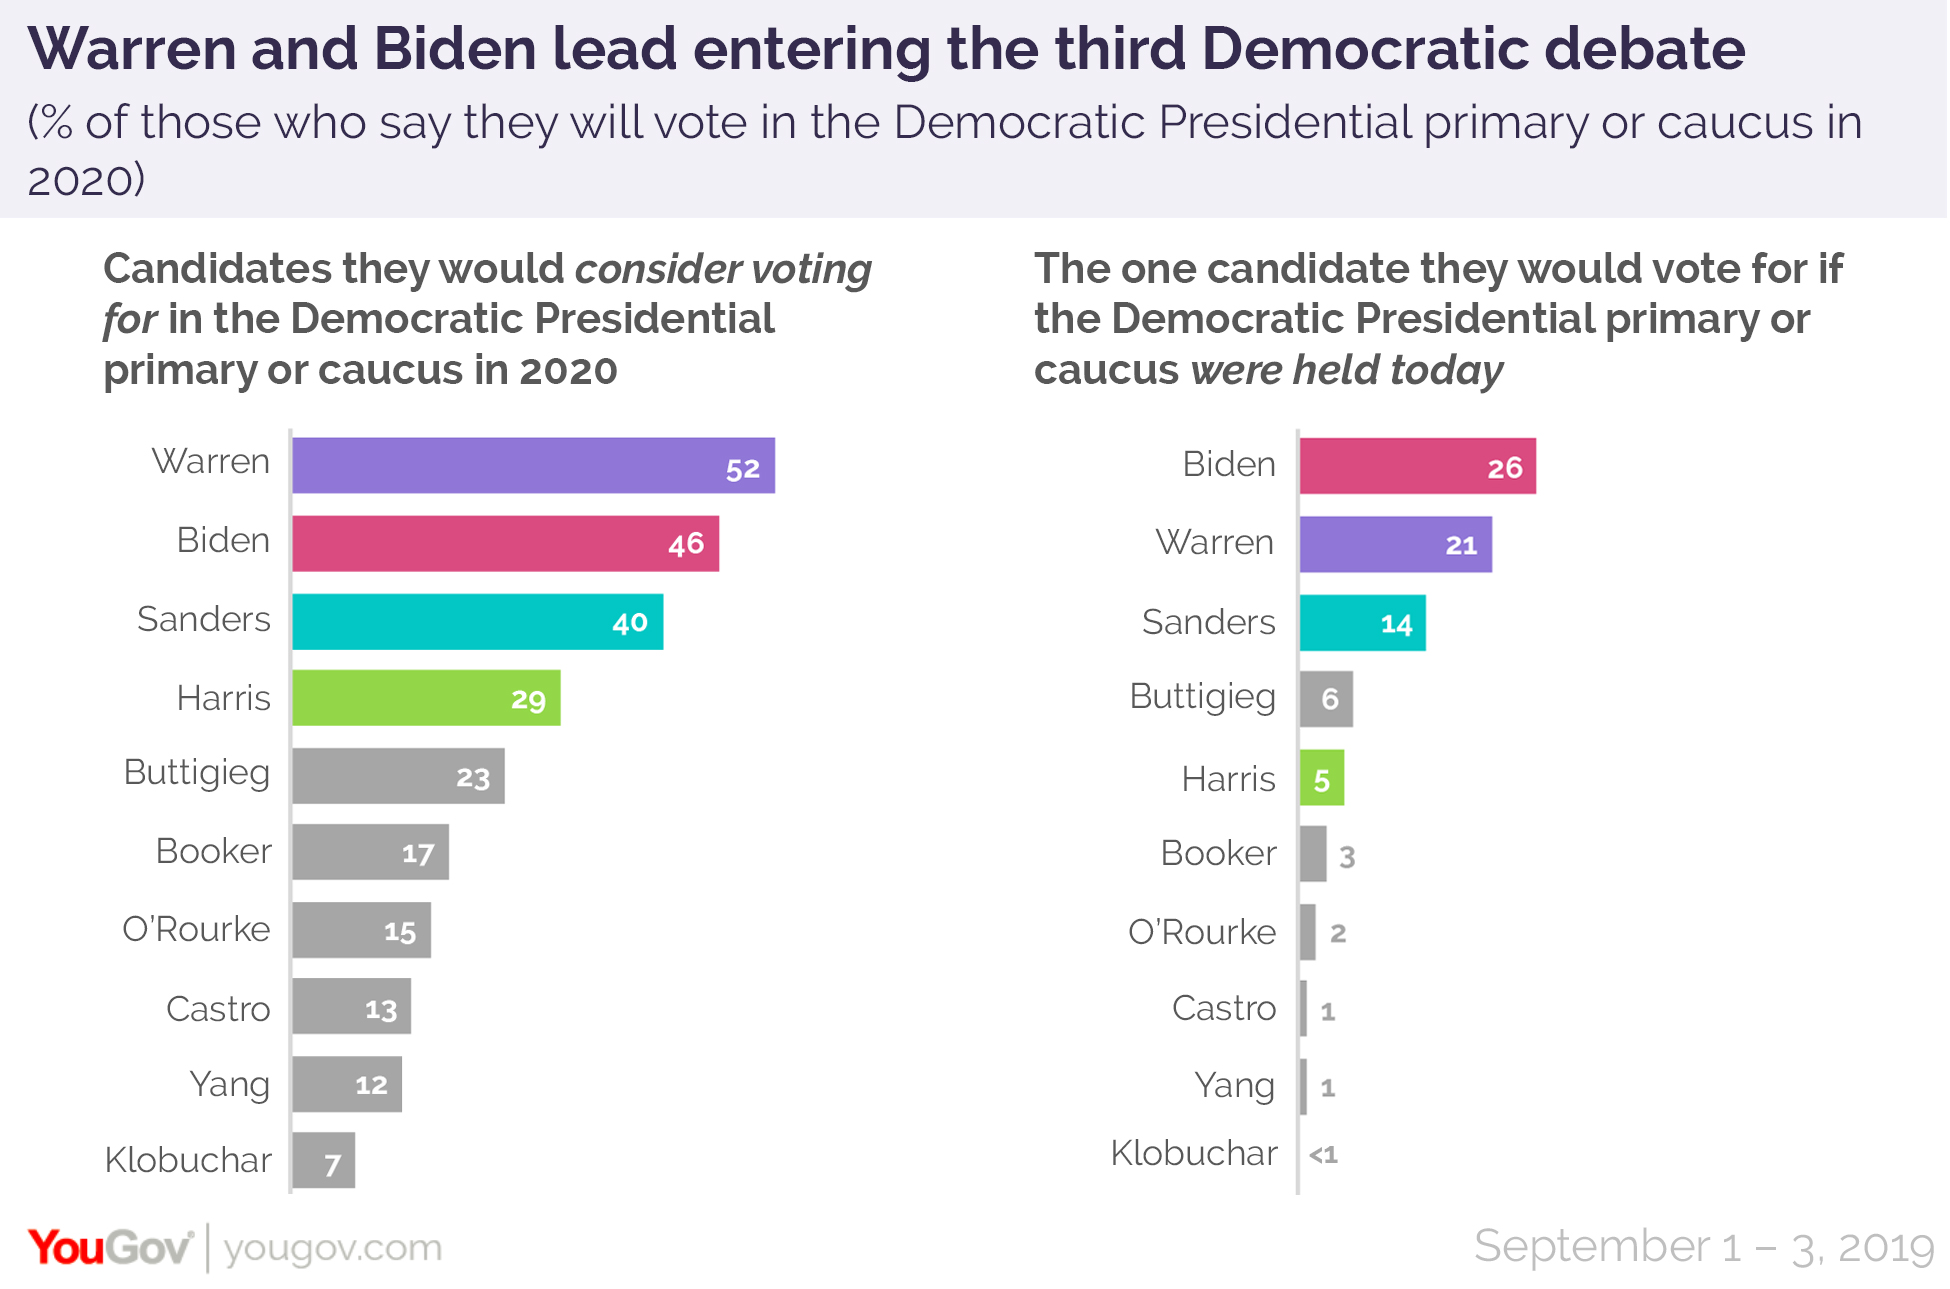 Elizabeth Warren and Joe Biden lead ahead of the third Democratic primary debate